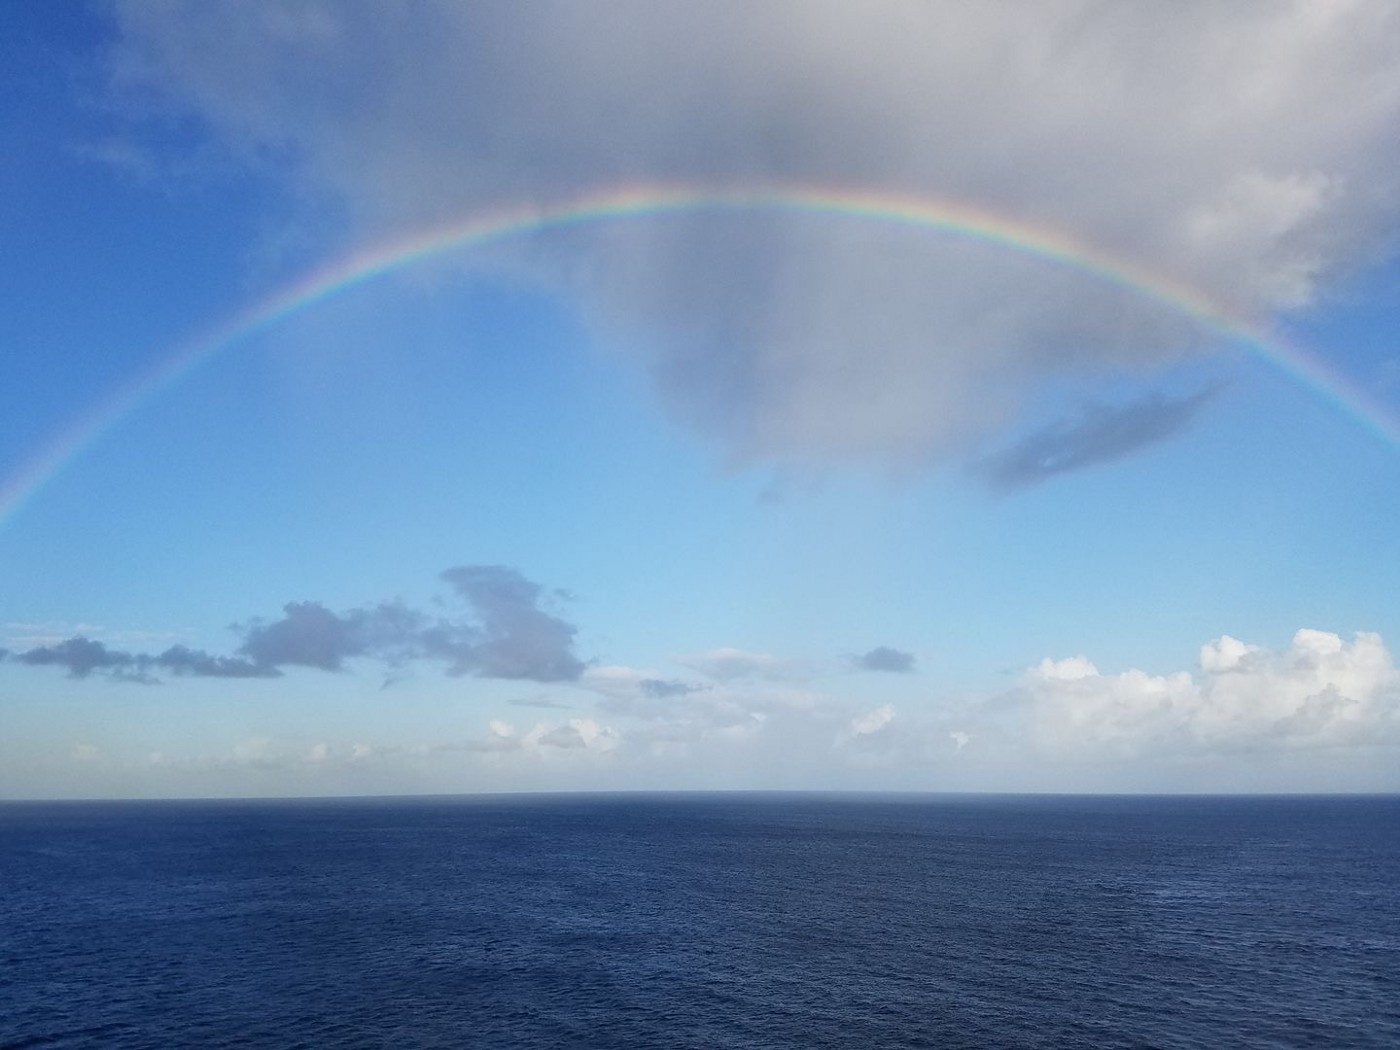 A full rainbow, over open water.